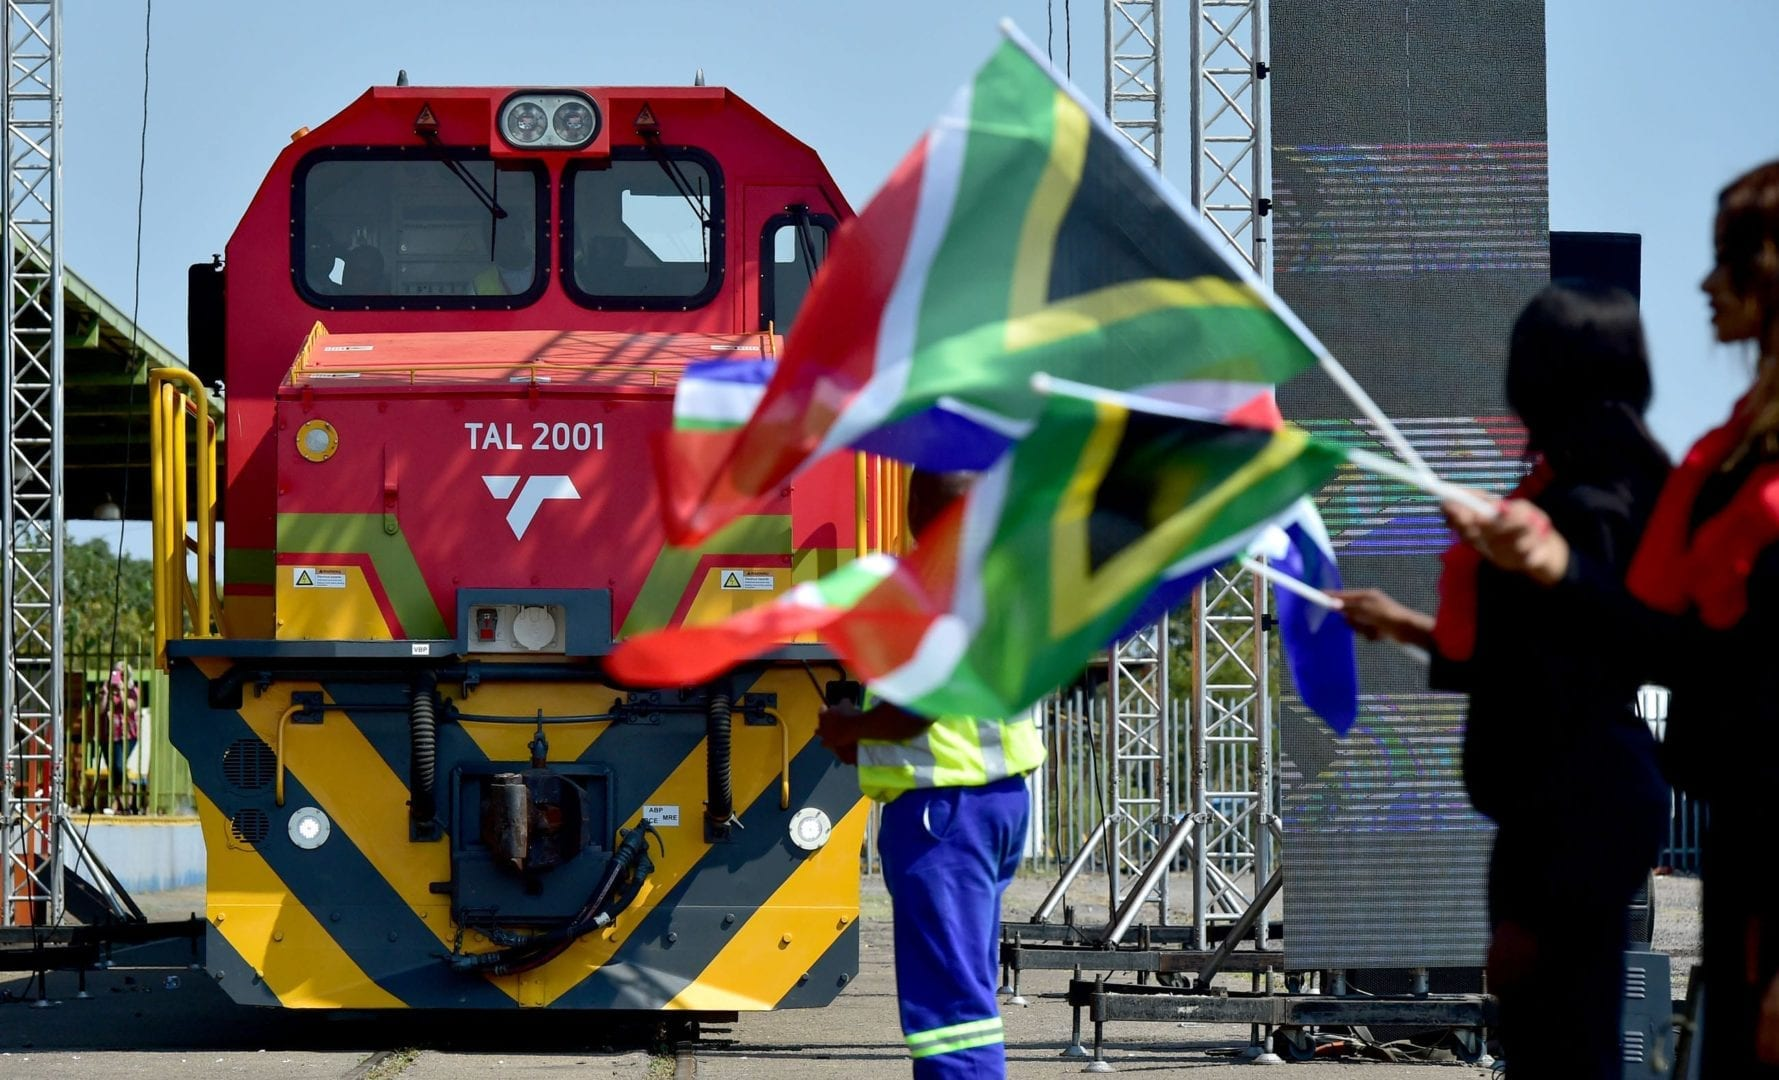 The launch of the Trans Africa Locomotive in Pretoria. This is the first ever locomotive that has been designed, engineered and manufactured locally by the state-owned entity, Transnet, which will serve the African continent. (Photo: GCIS)